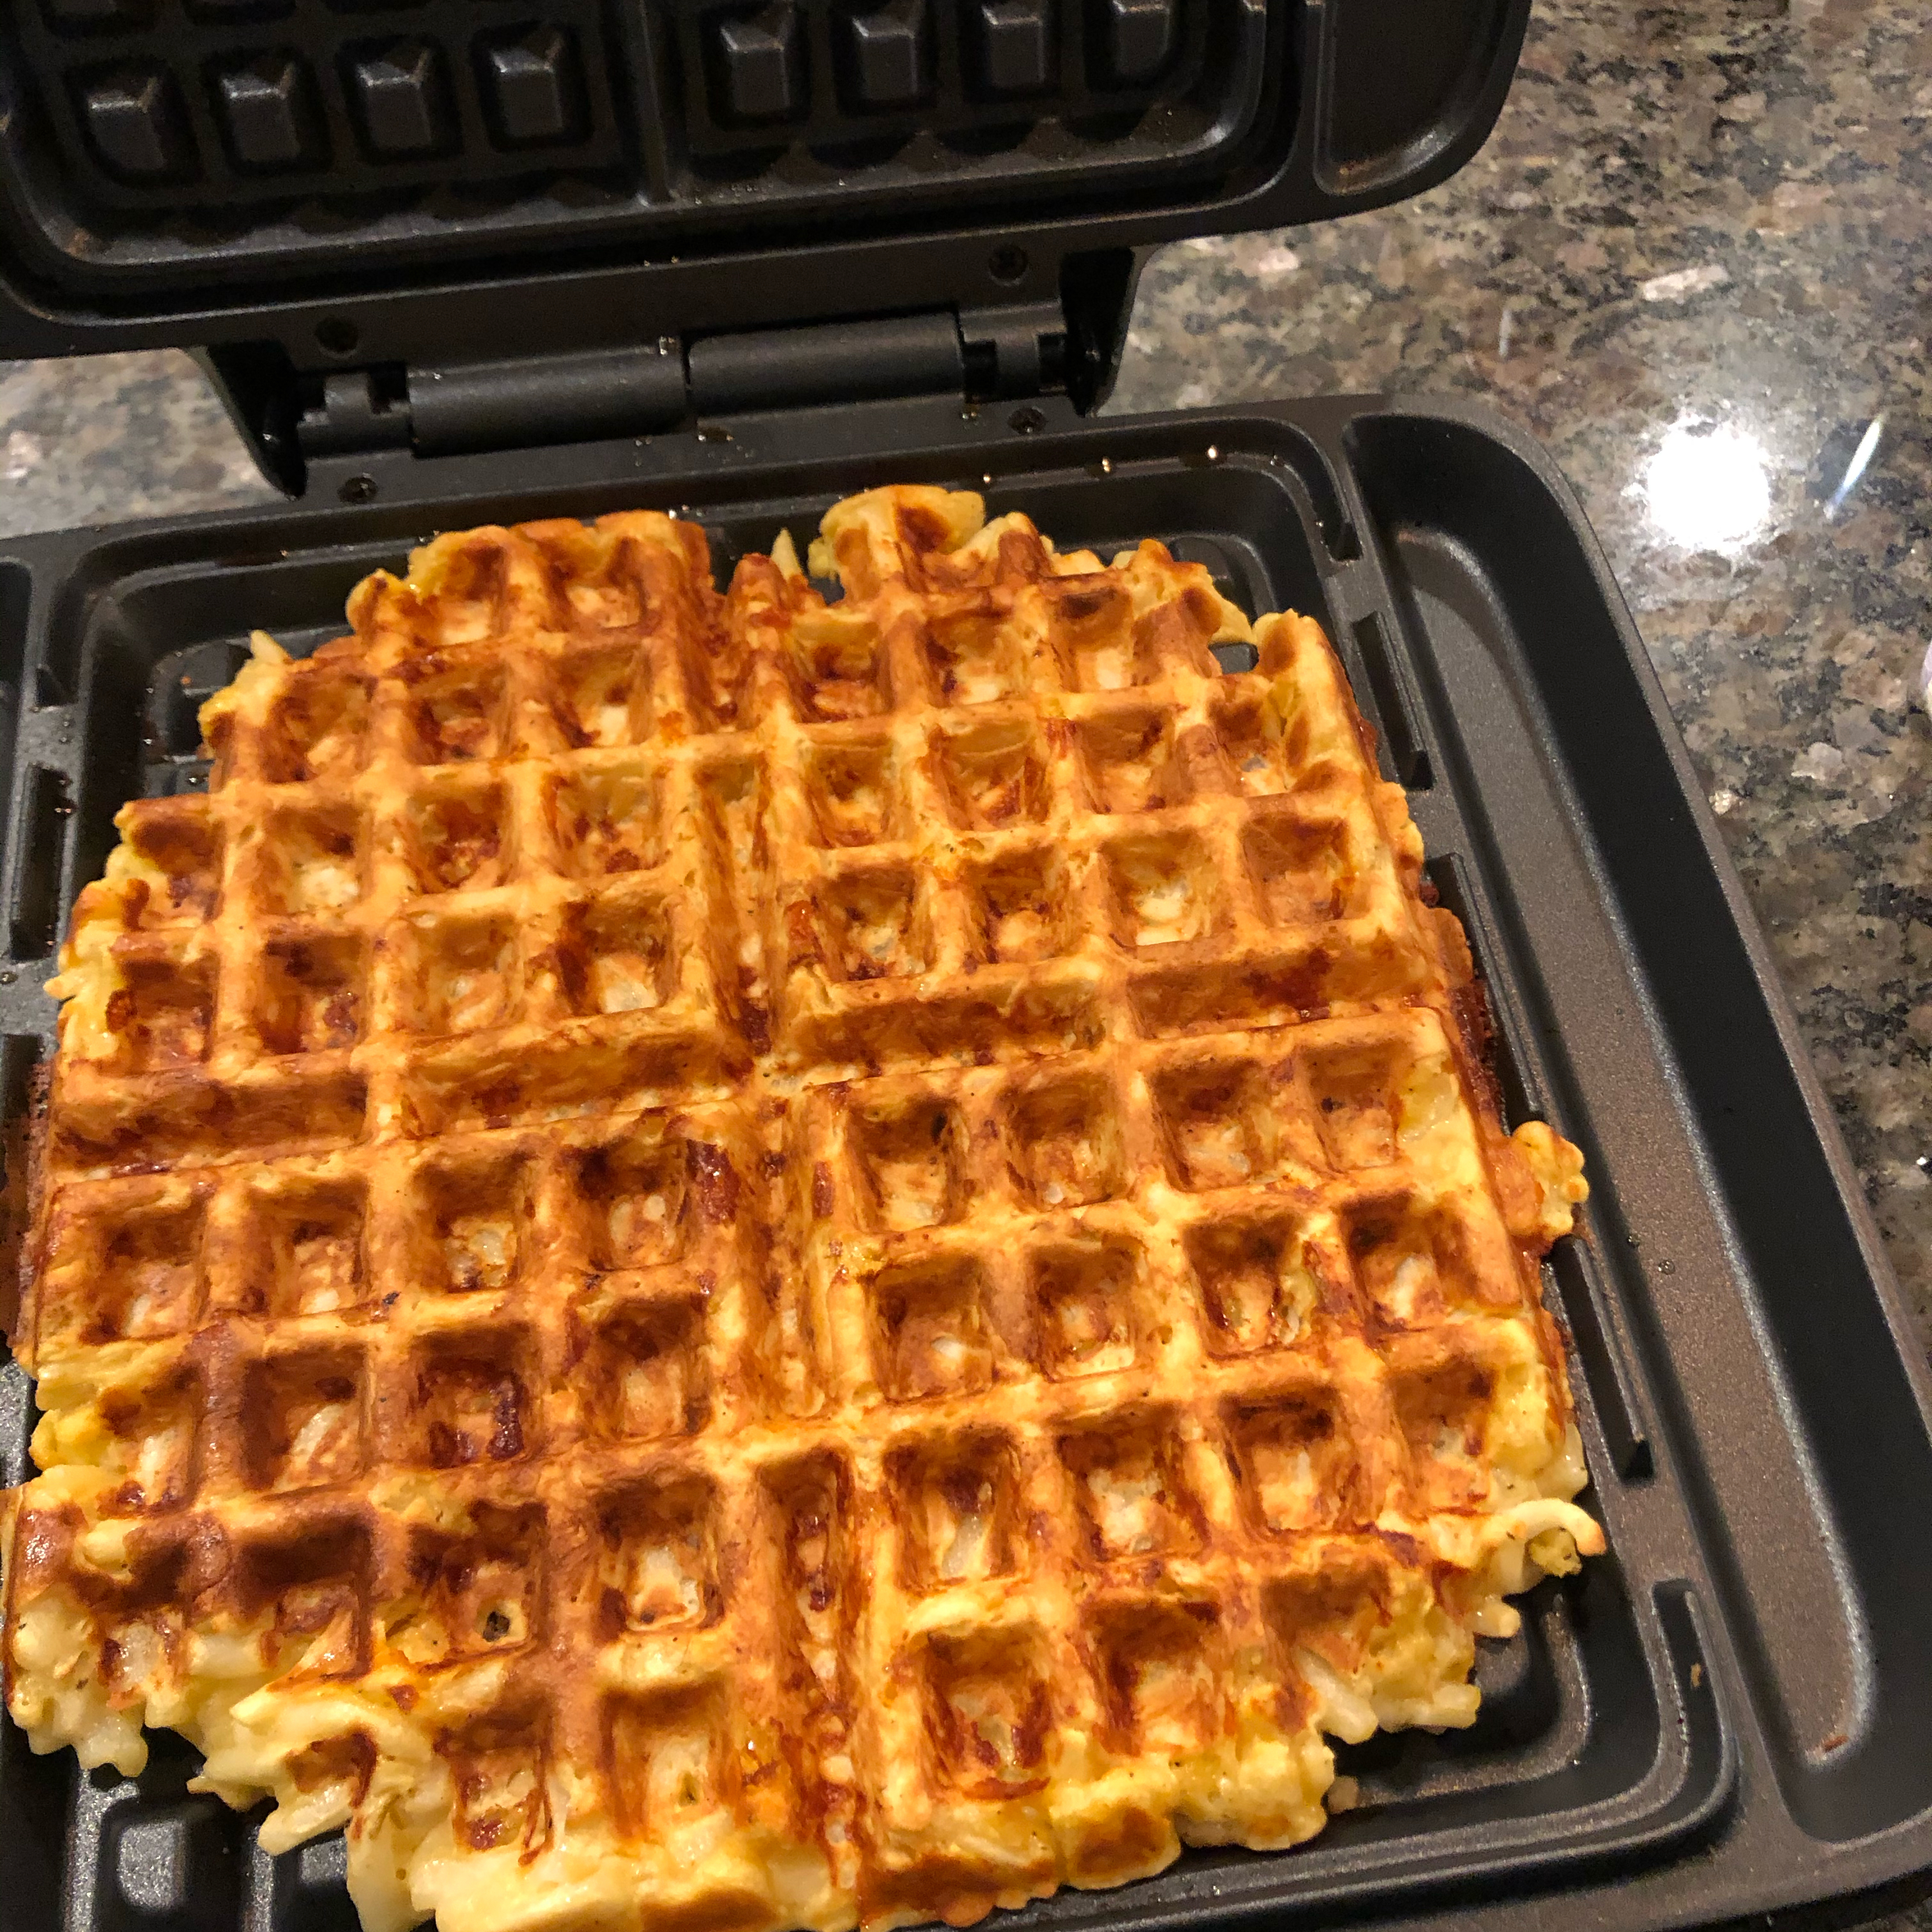 Kitchen Sink Hash Brown and Egg Waffle KimStA